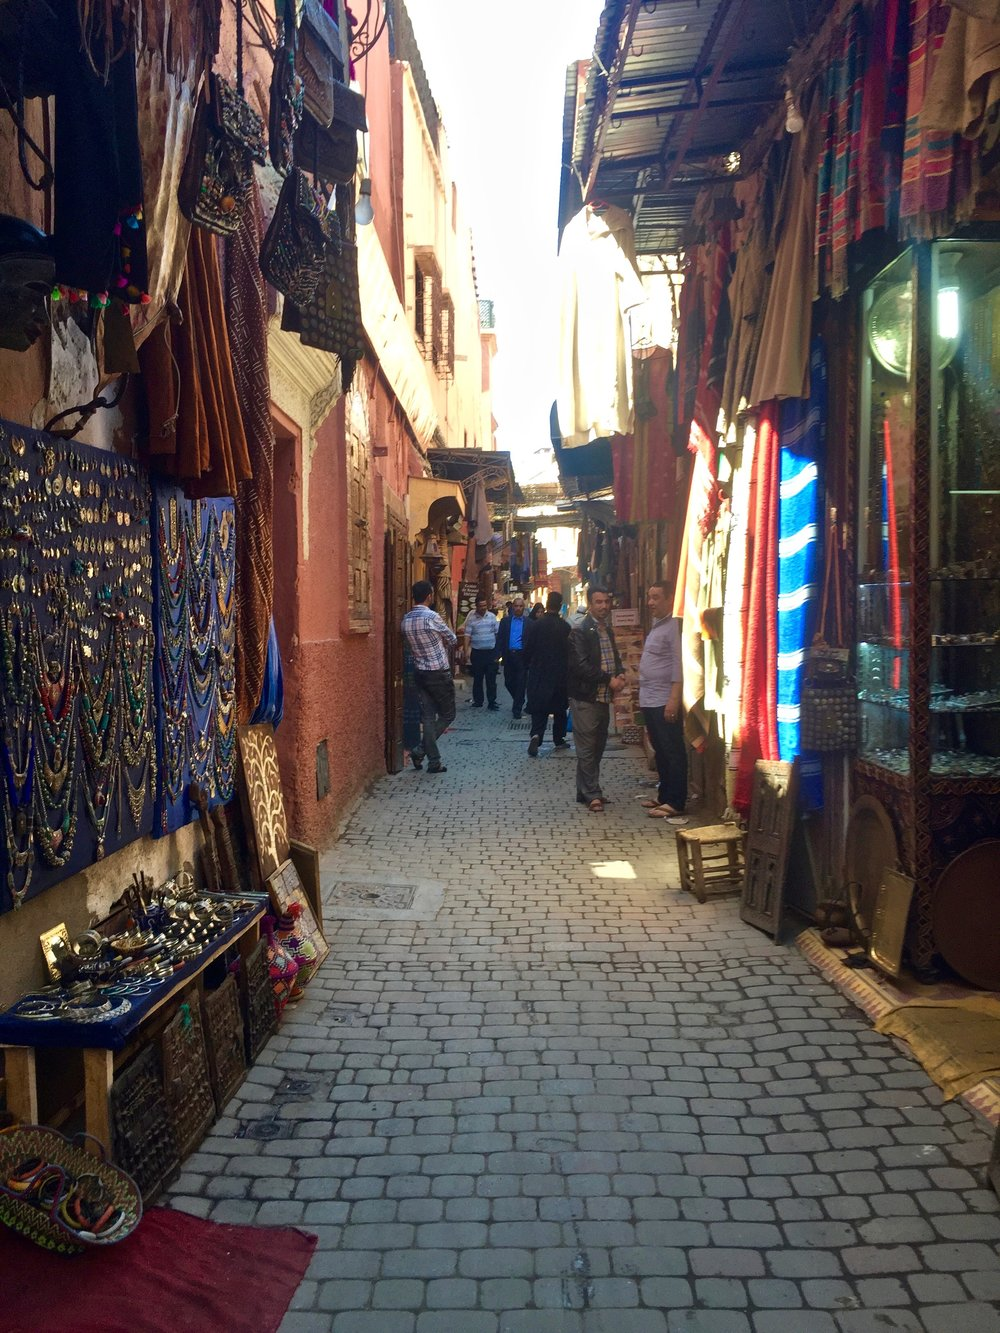 Wandering through the maze-like markets of Marrakech.